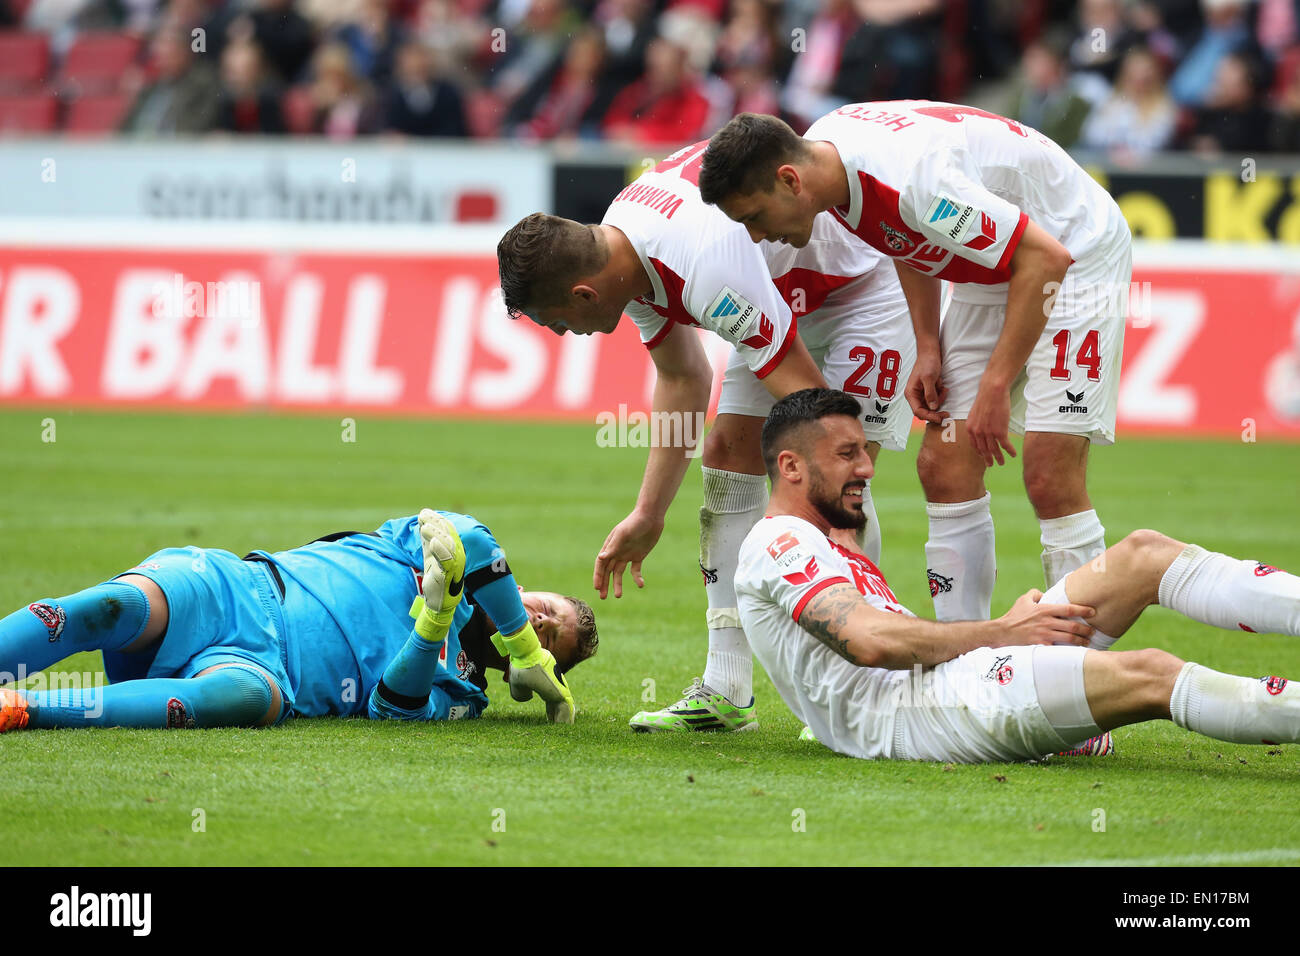 Cologne, Germany, 25Apr 2015. Bundesliga, 1. FC Koeln vs Bayer Leverkusen. Kevin Wimmer (L) and Jonas Hector (#14) - Stock Image